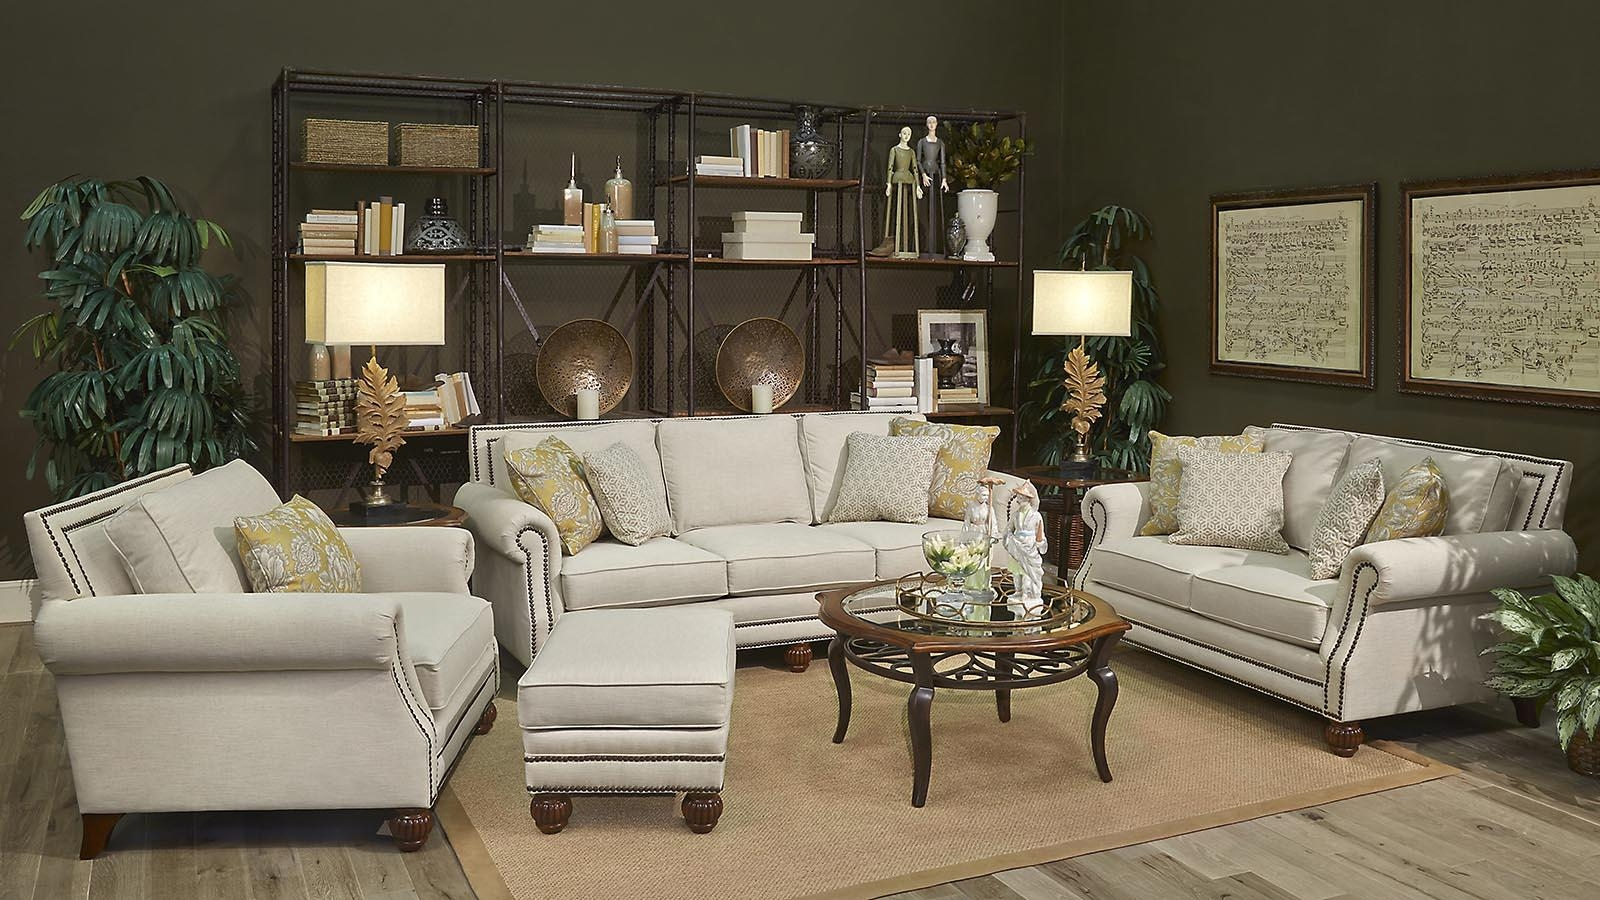 Mayo Furniture | Gallery Furniture Inside Living Room Sofa Chairs (View 6 of 20)